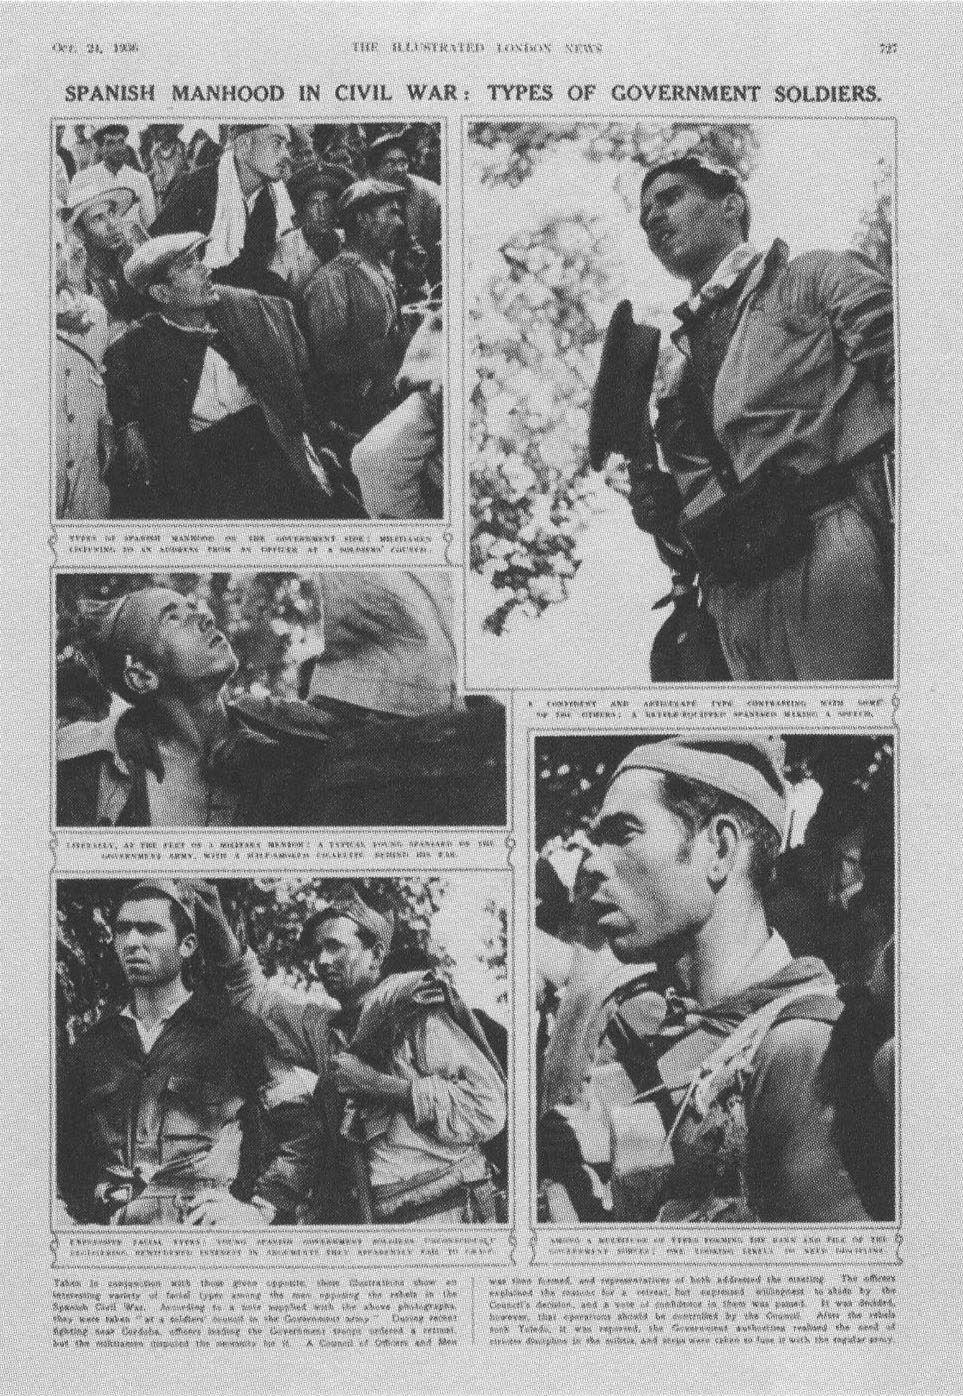 19-page-727-illustrated-london-news-october-24-1936